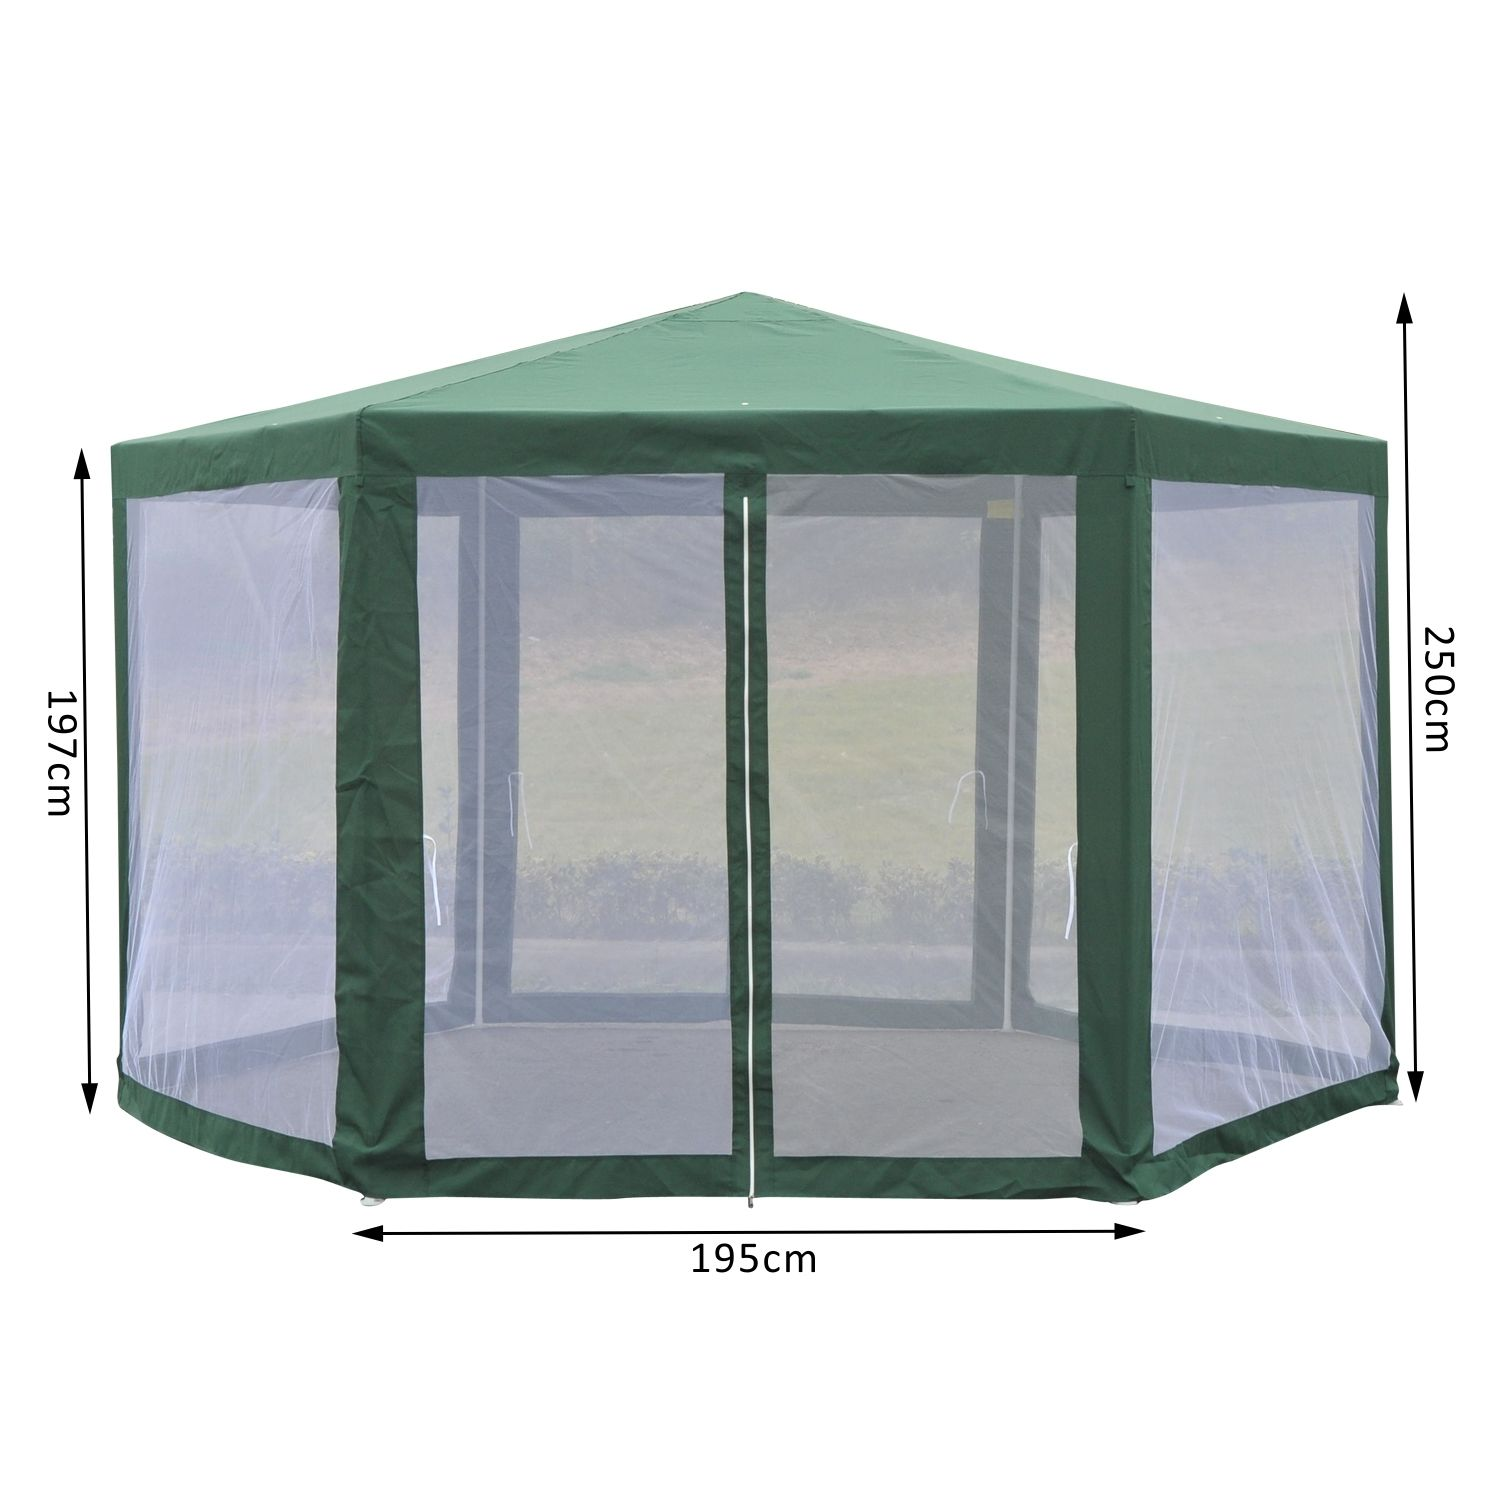 Outsunny-Patio-Gazebo-Netting-Canopy-Garden-Party-Tent-  sc 1 st  eBay : outdoor netted tents - memphite.com